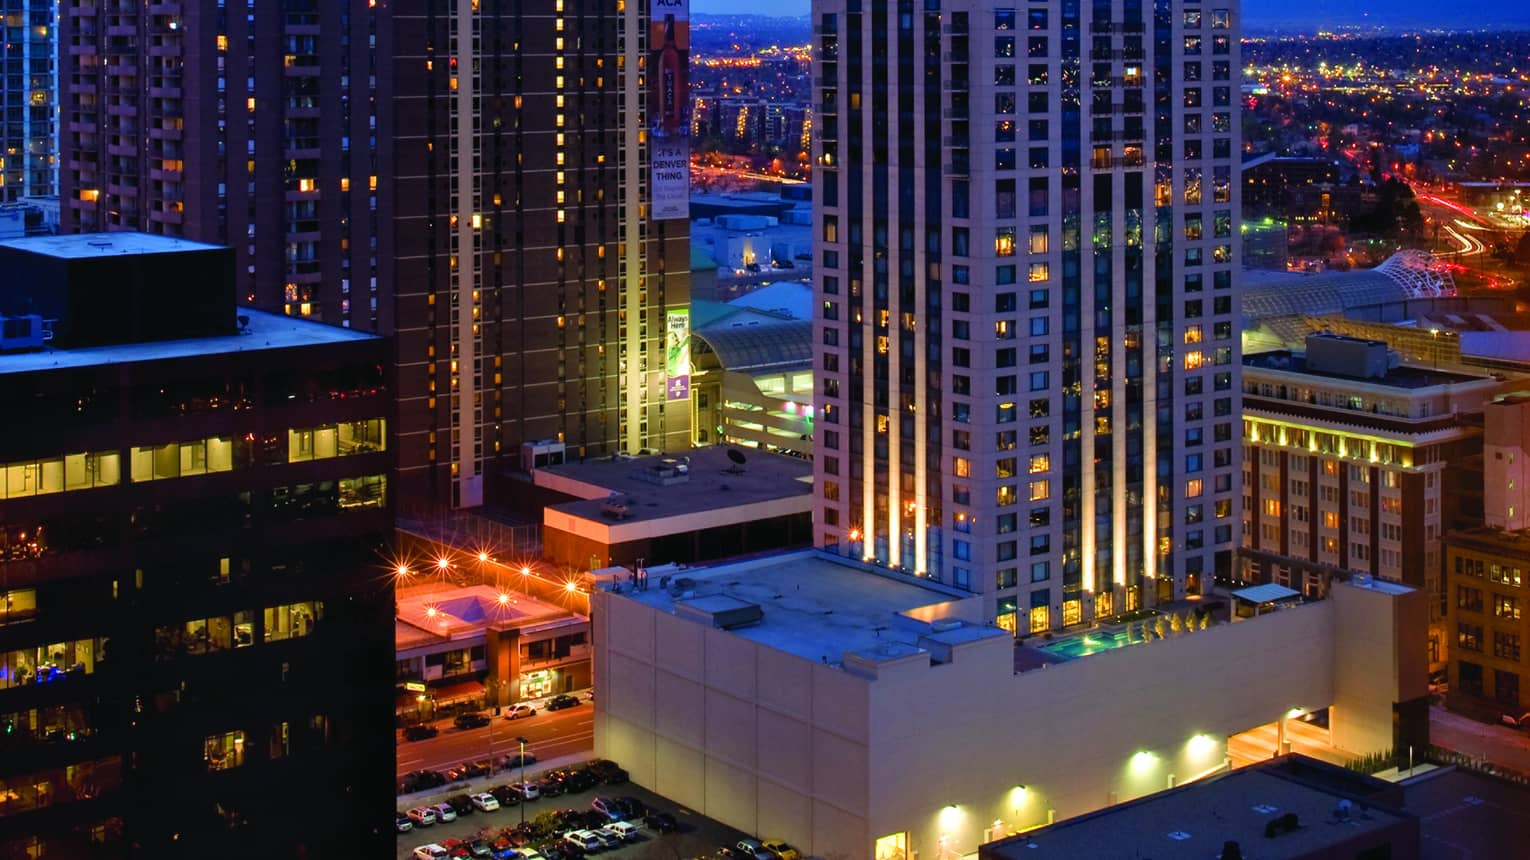 Aerial view of Four Seasons Hotel Denver high rise against skyline at night